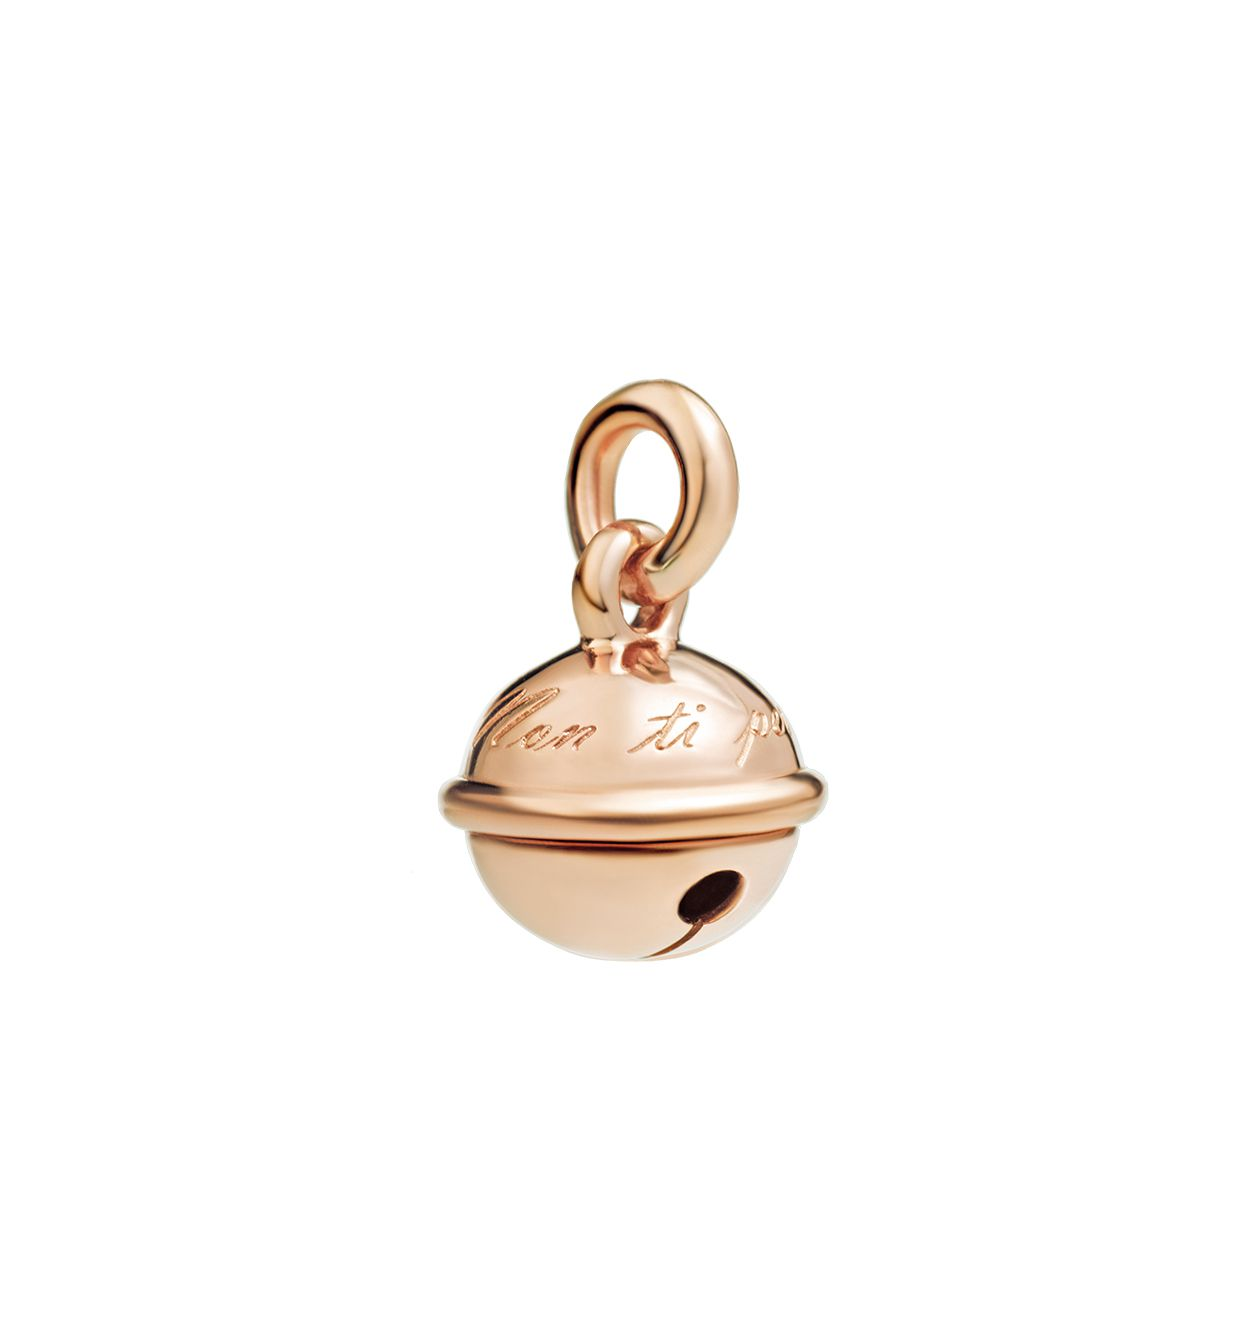 DoDo Bell in 9k Rose Gold (small) - Orsini Jewellers NZ